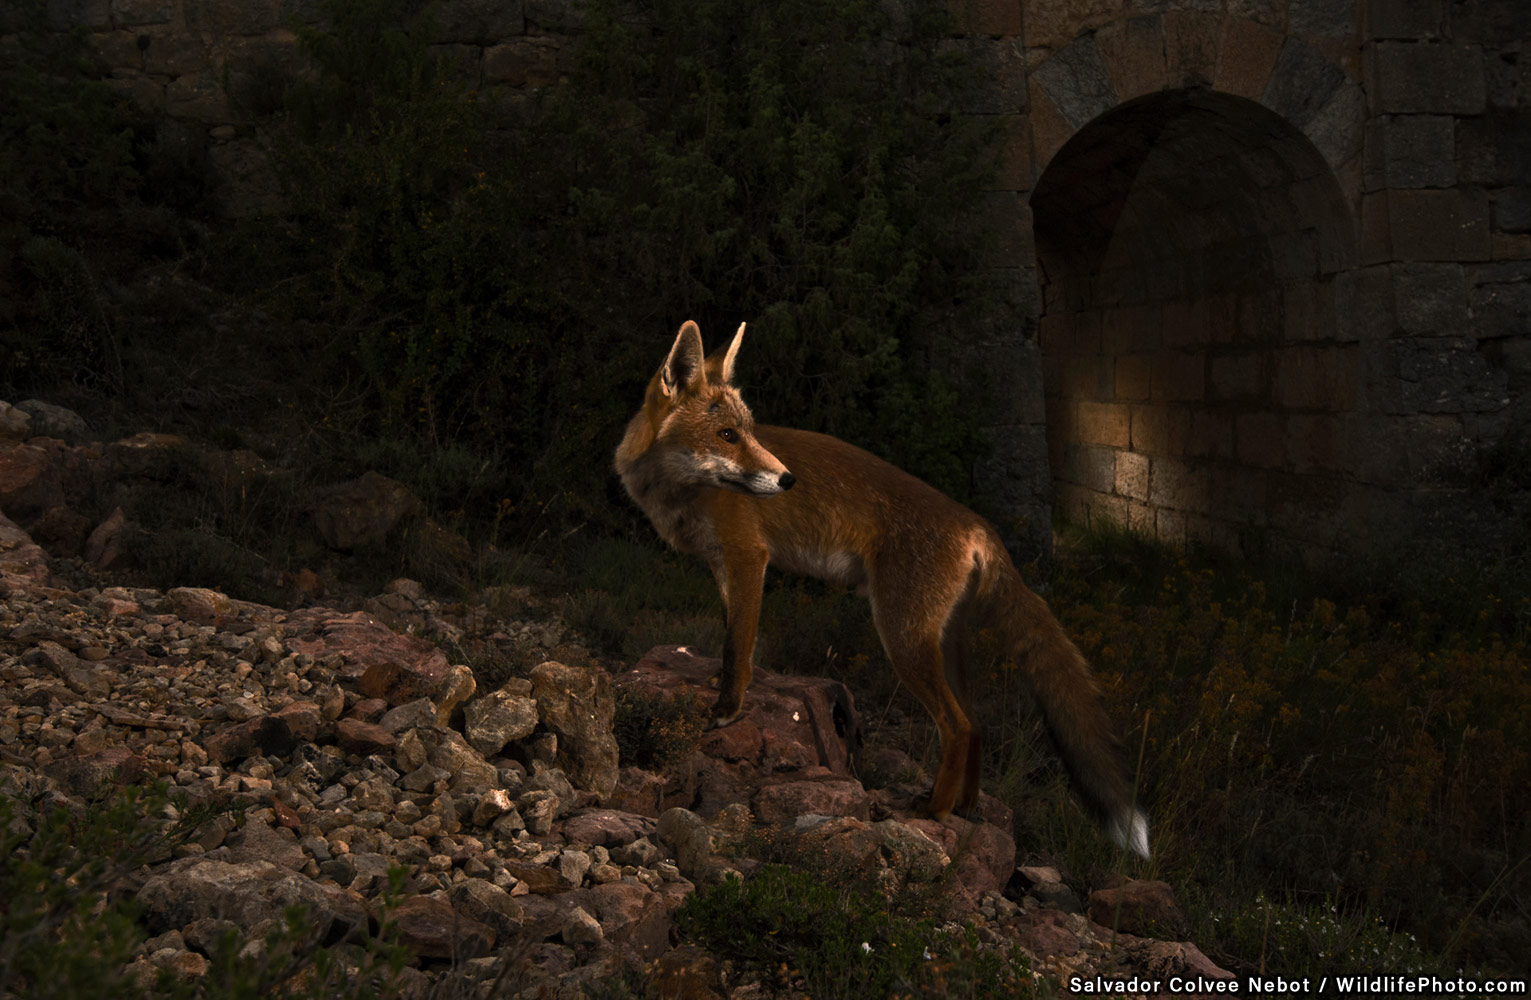 The Fox and the Bridge, © Salvador Colvée Nebot, Highly Commended, Wildlife Portraits Photo Contest